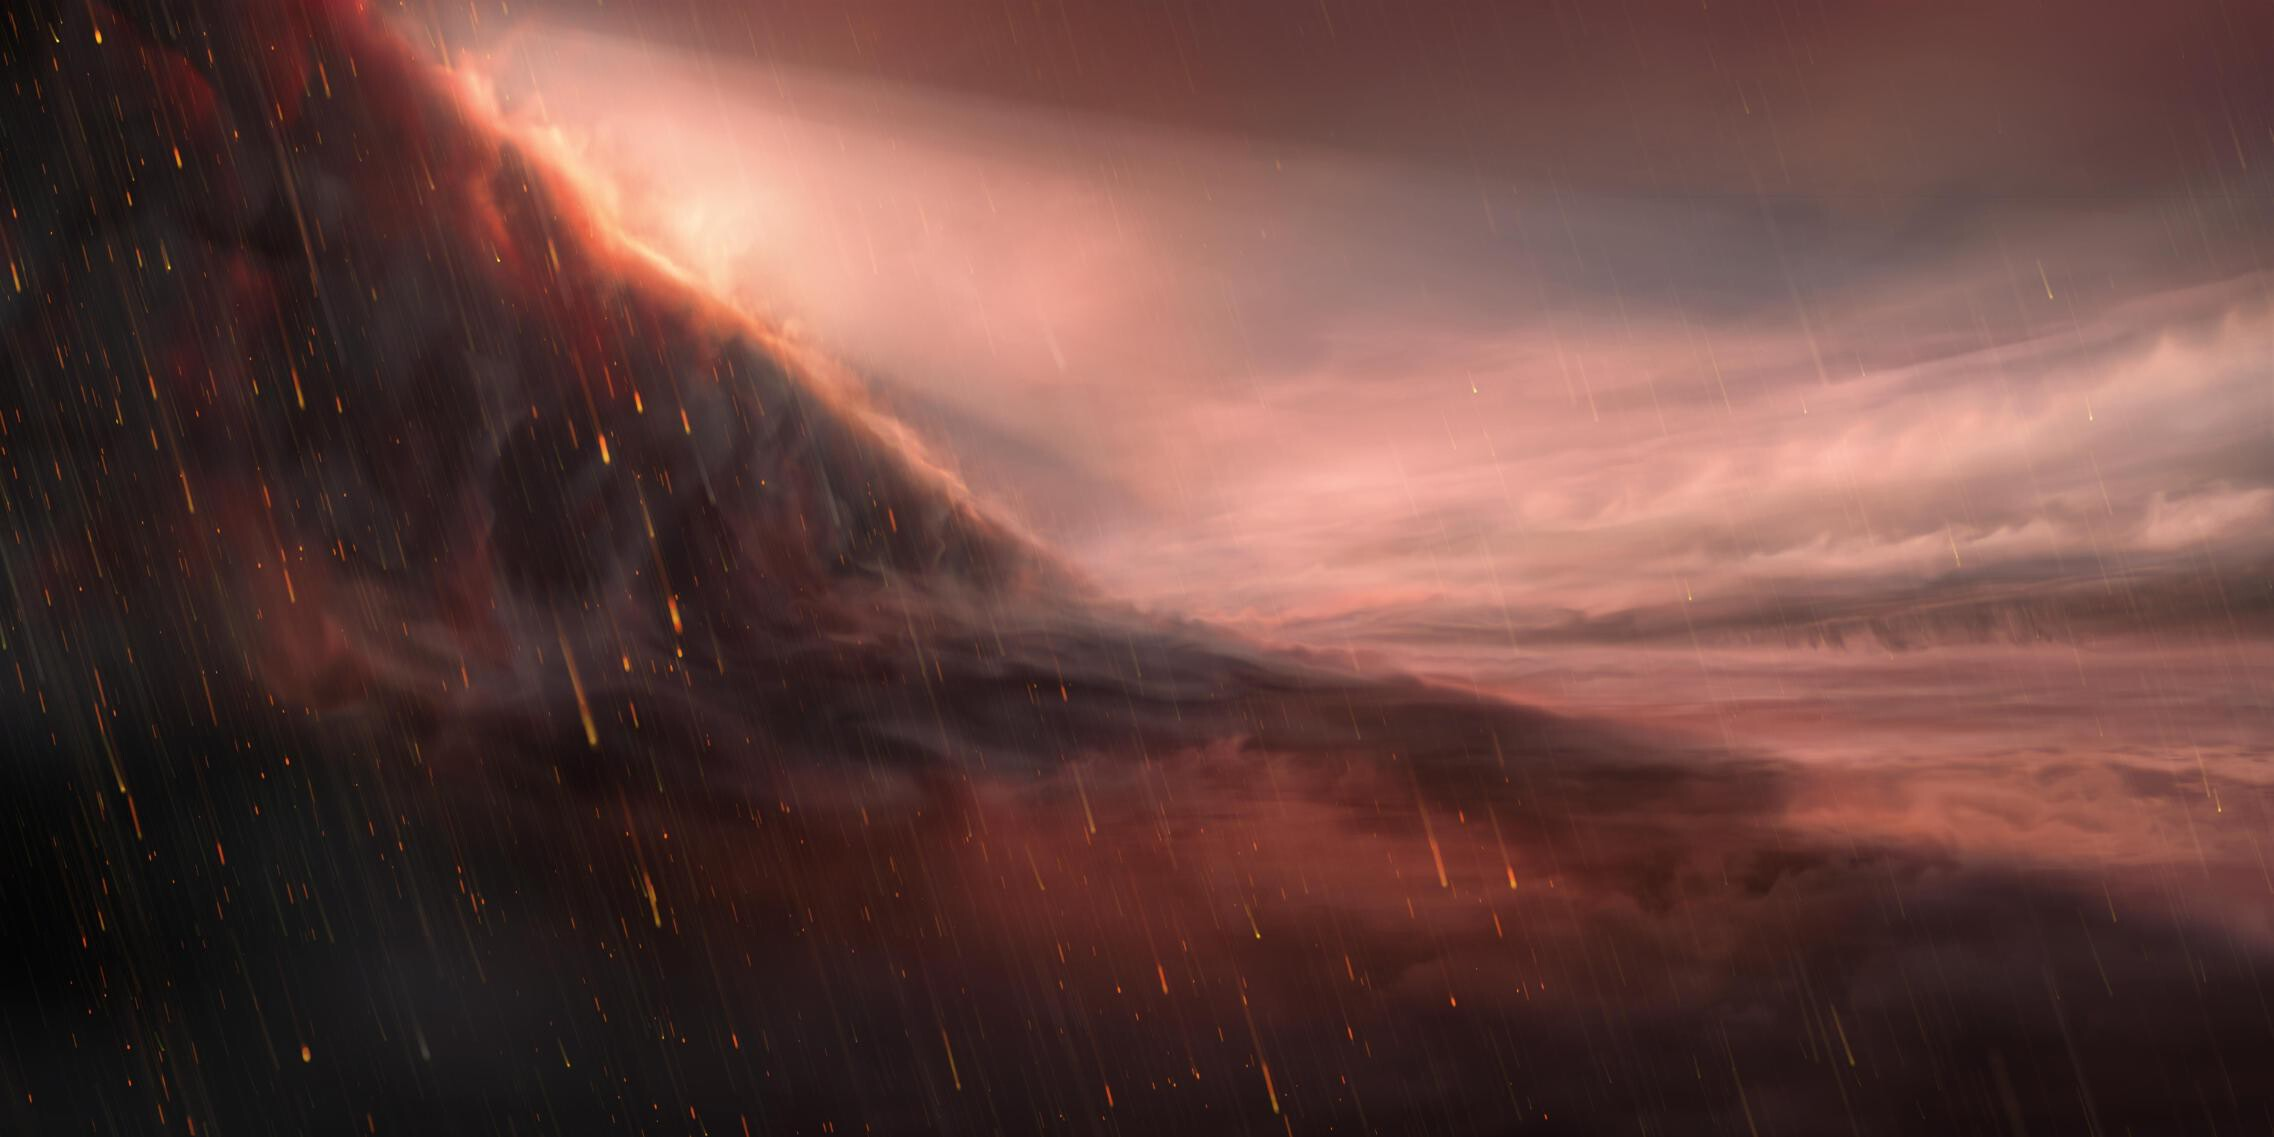 Planet with iron rainfall is even more extreme than scientists thought